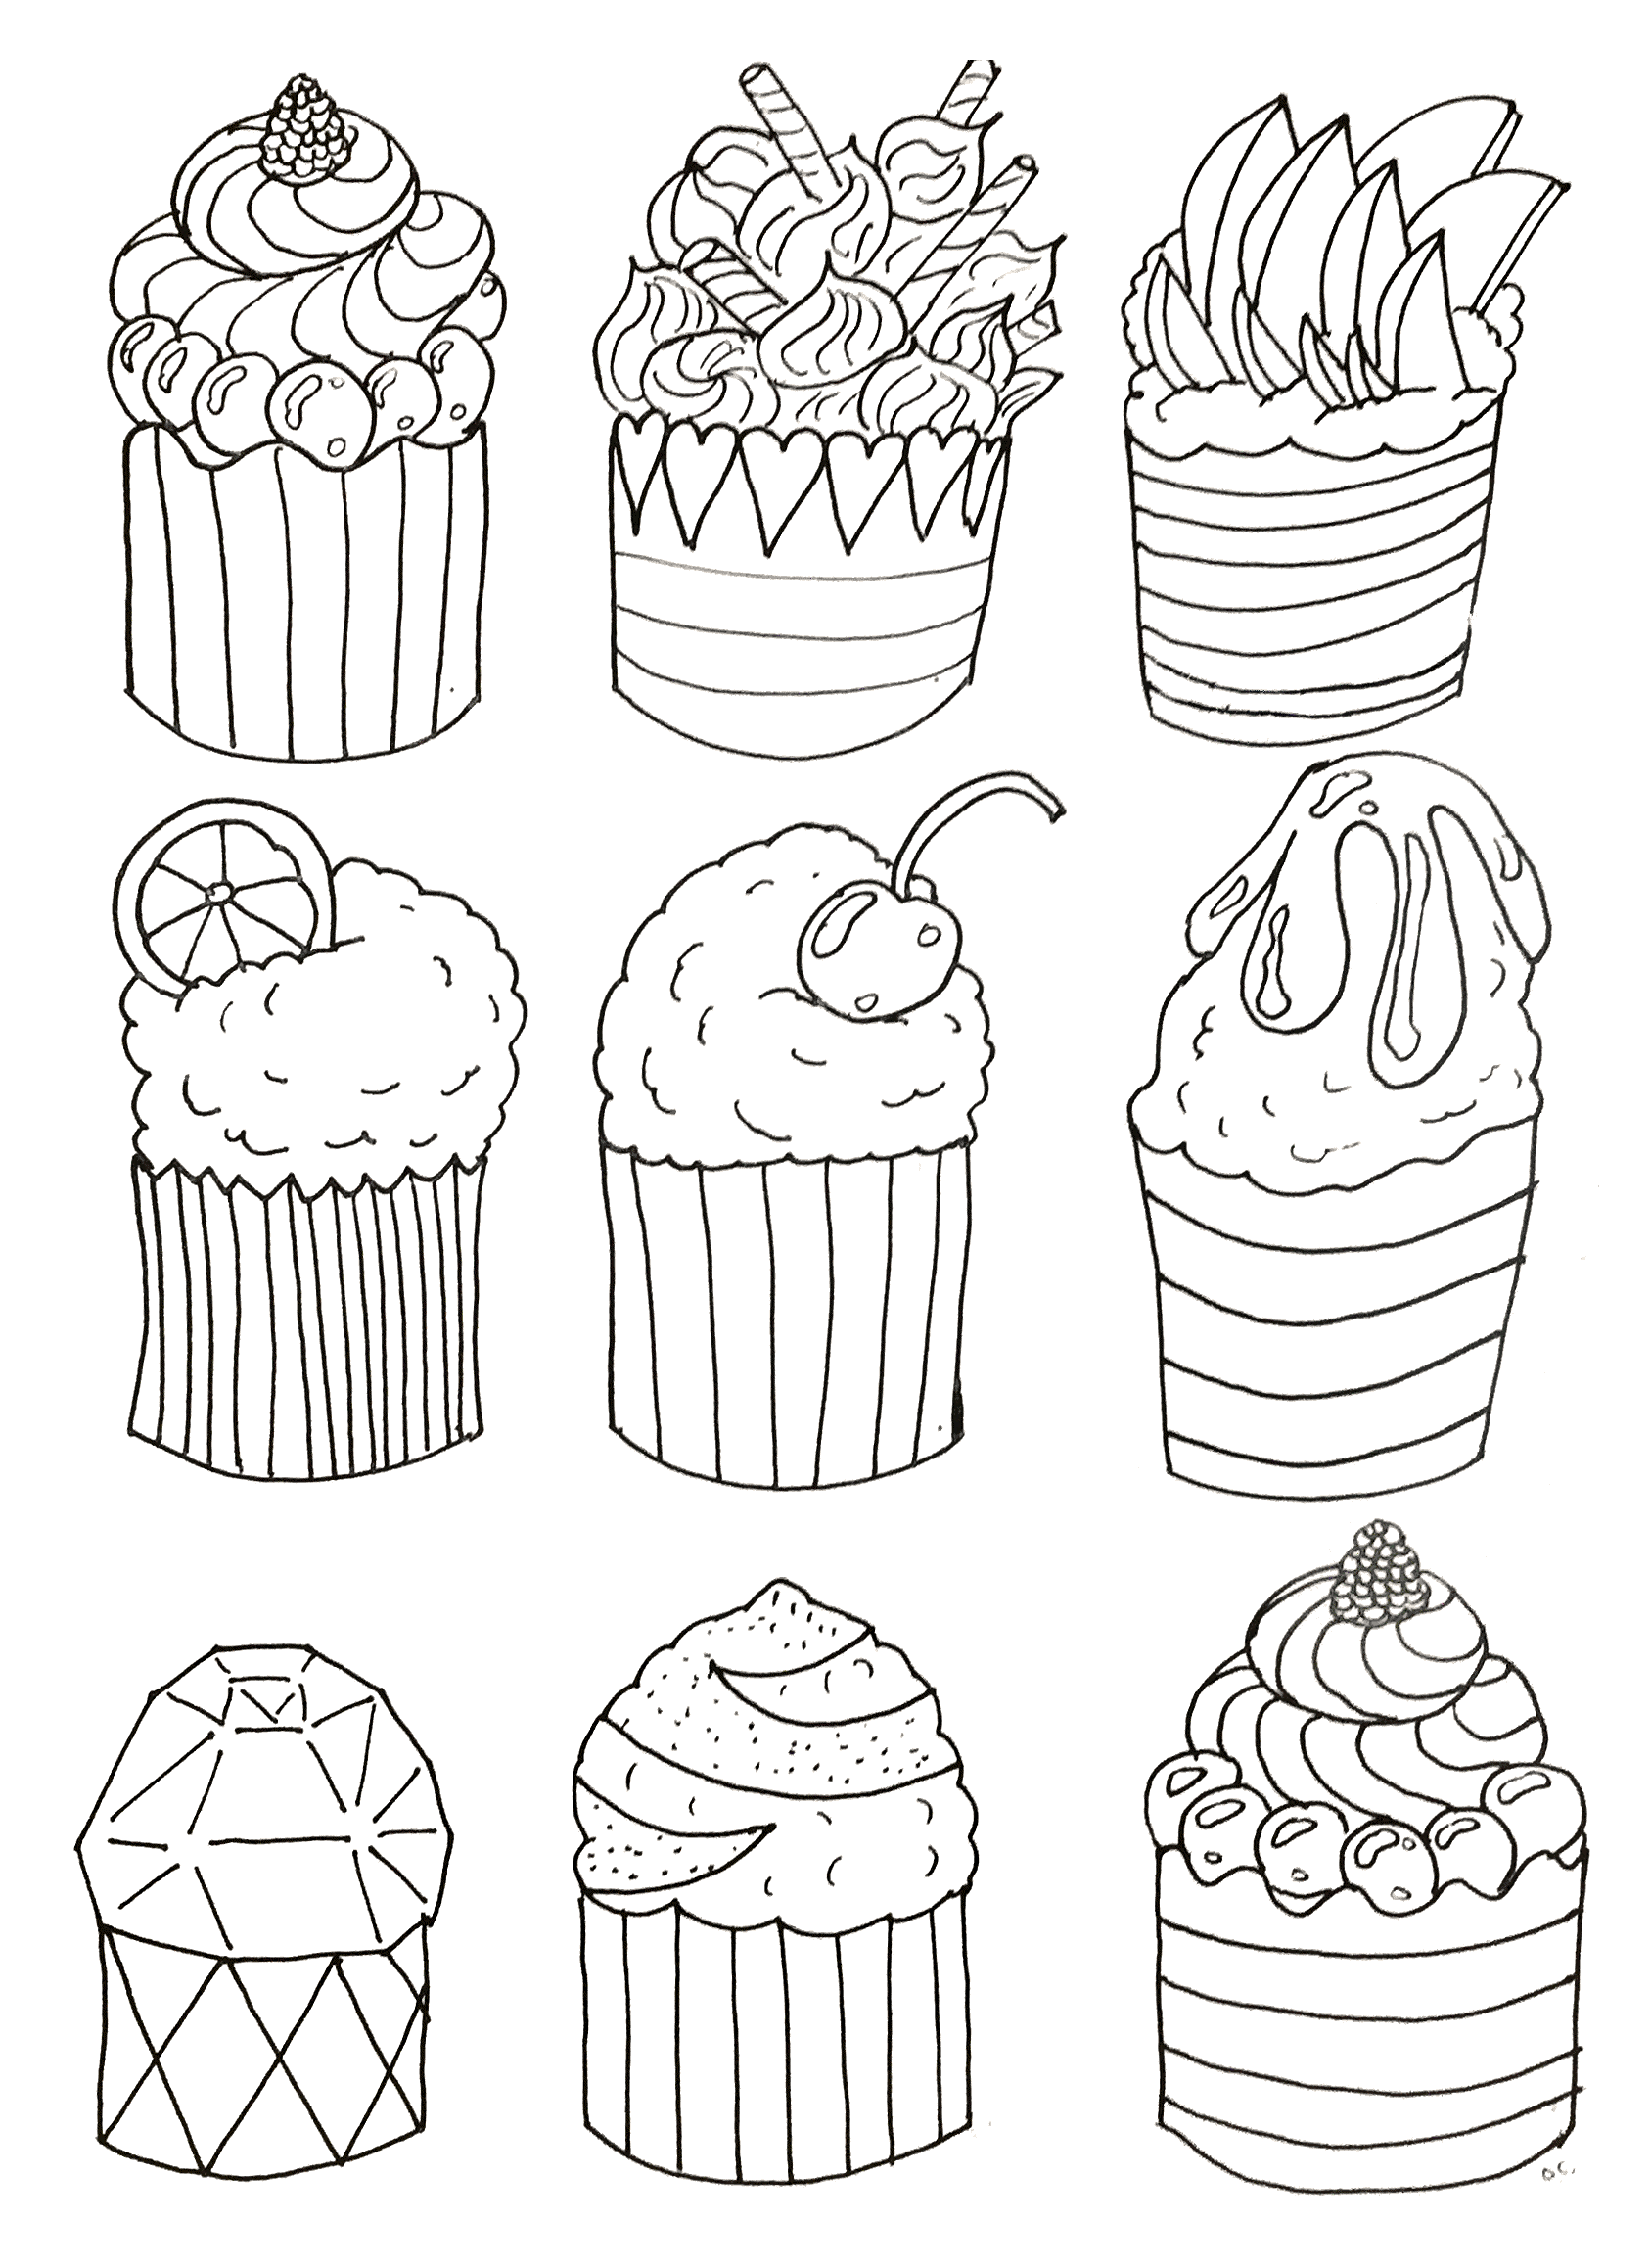 Simple cupcakes  - Image with : Food